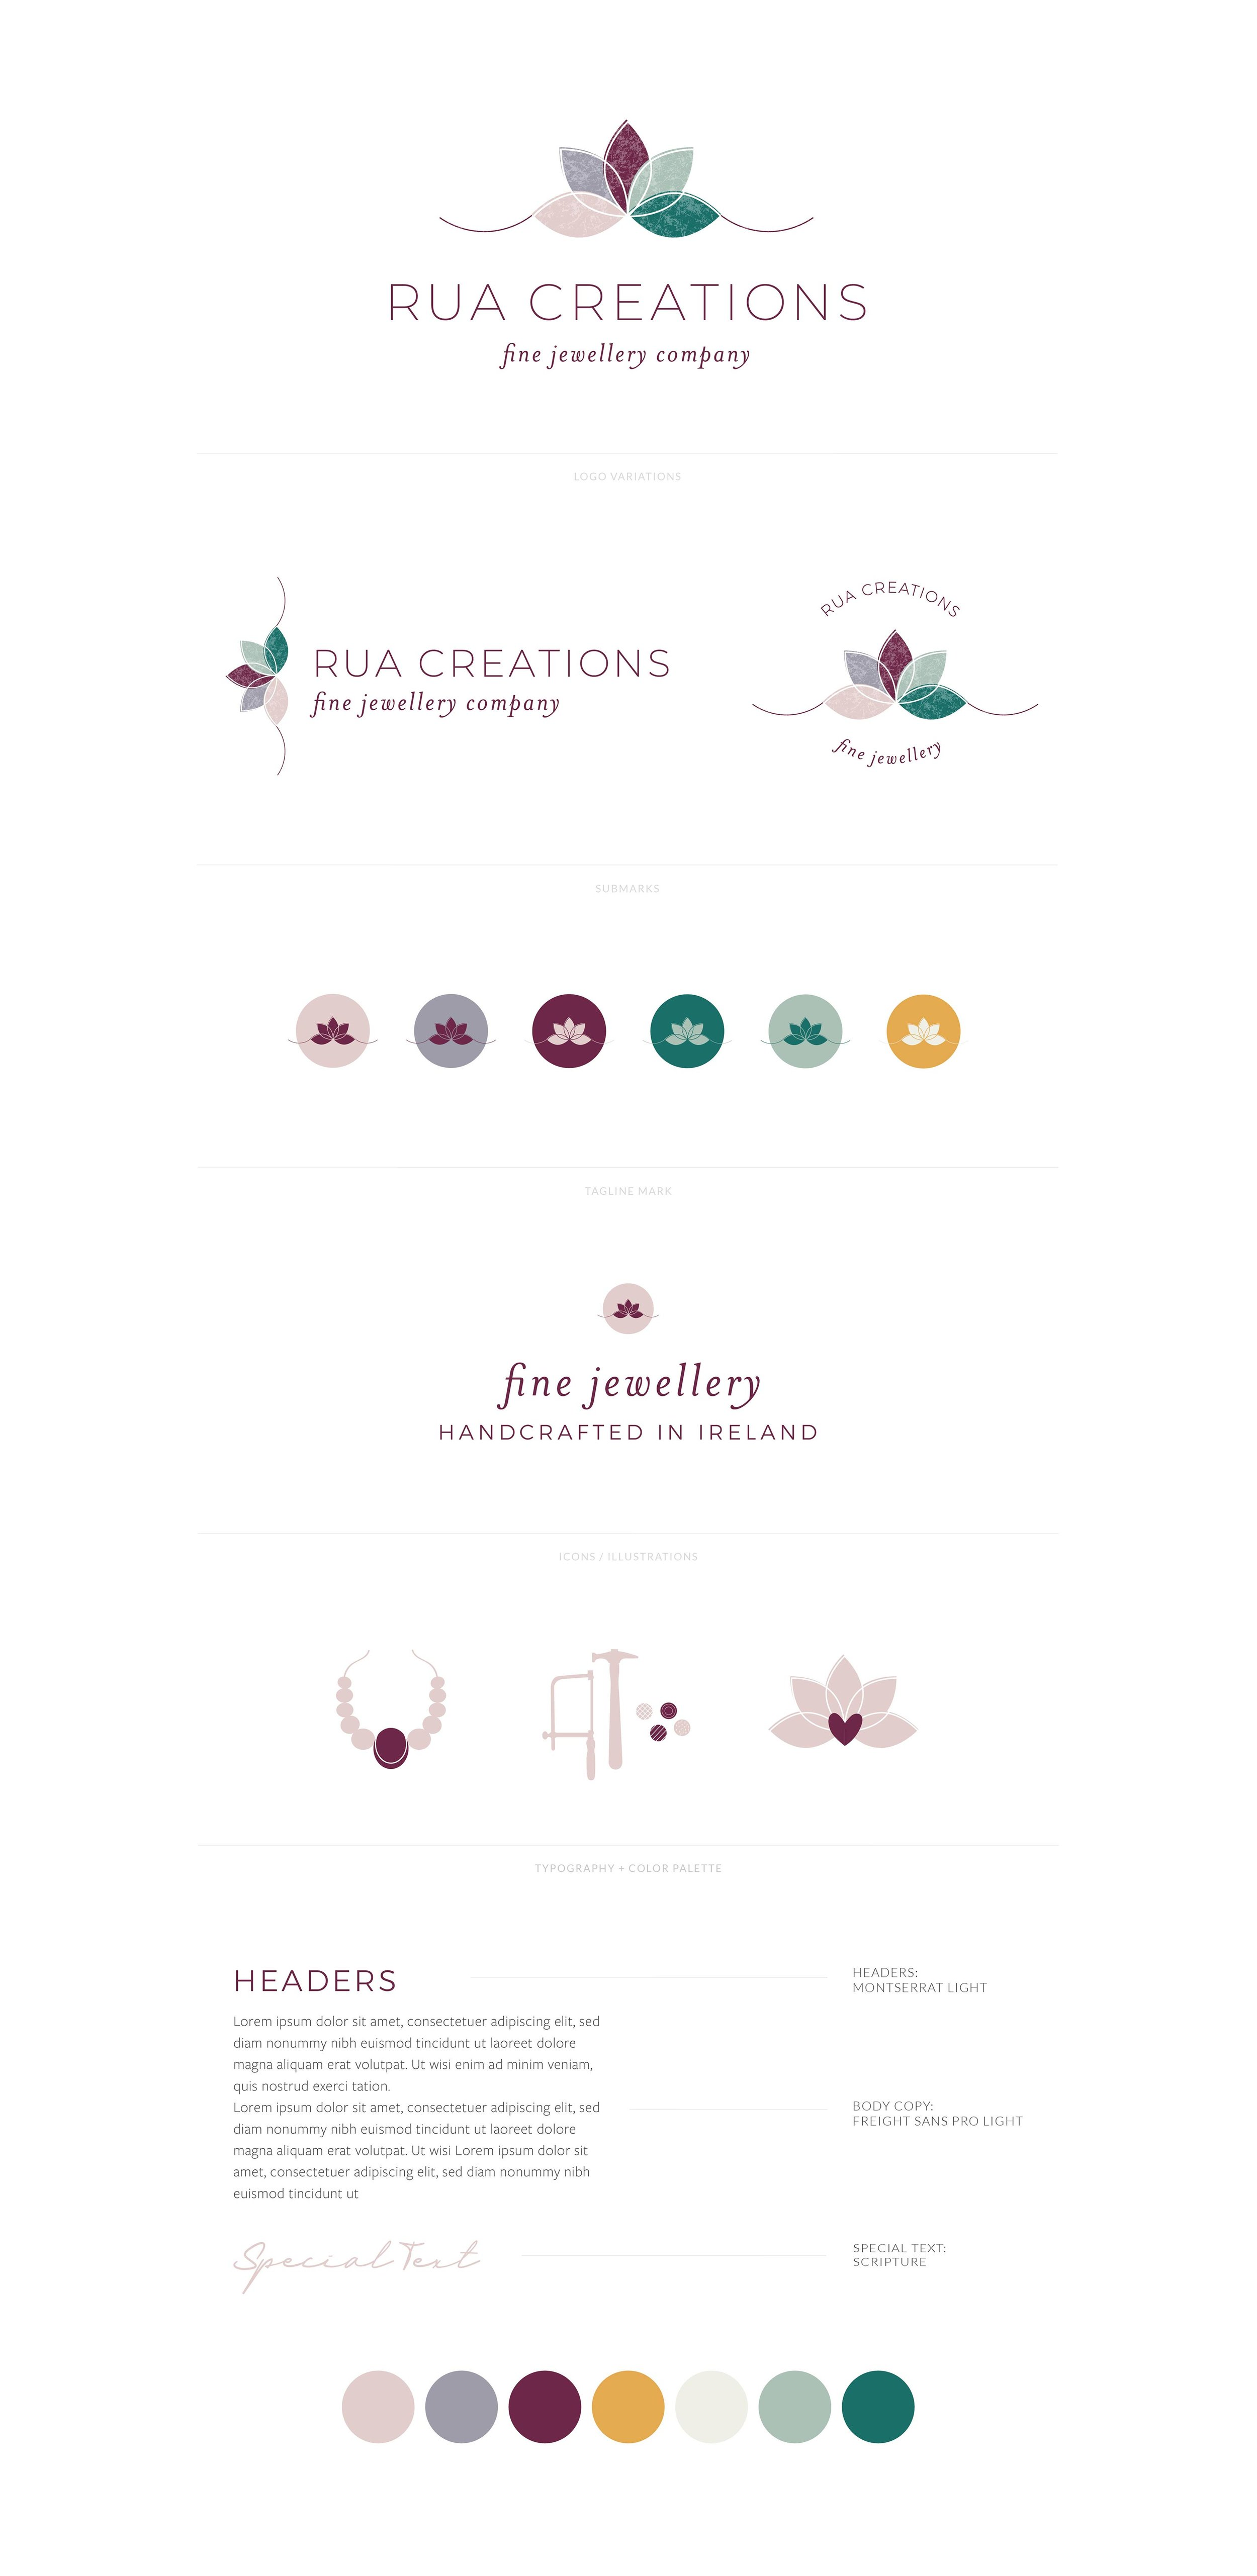 Rua Creations Brand Board | Logo, Favicon, Tagline Mark, Custom Illustrative Icons, Font Styling, Color Palette | Unique, inspired, ethical, feel-good jewelry, handcrafted goldsmith  |  Branding by AllieMarie Design